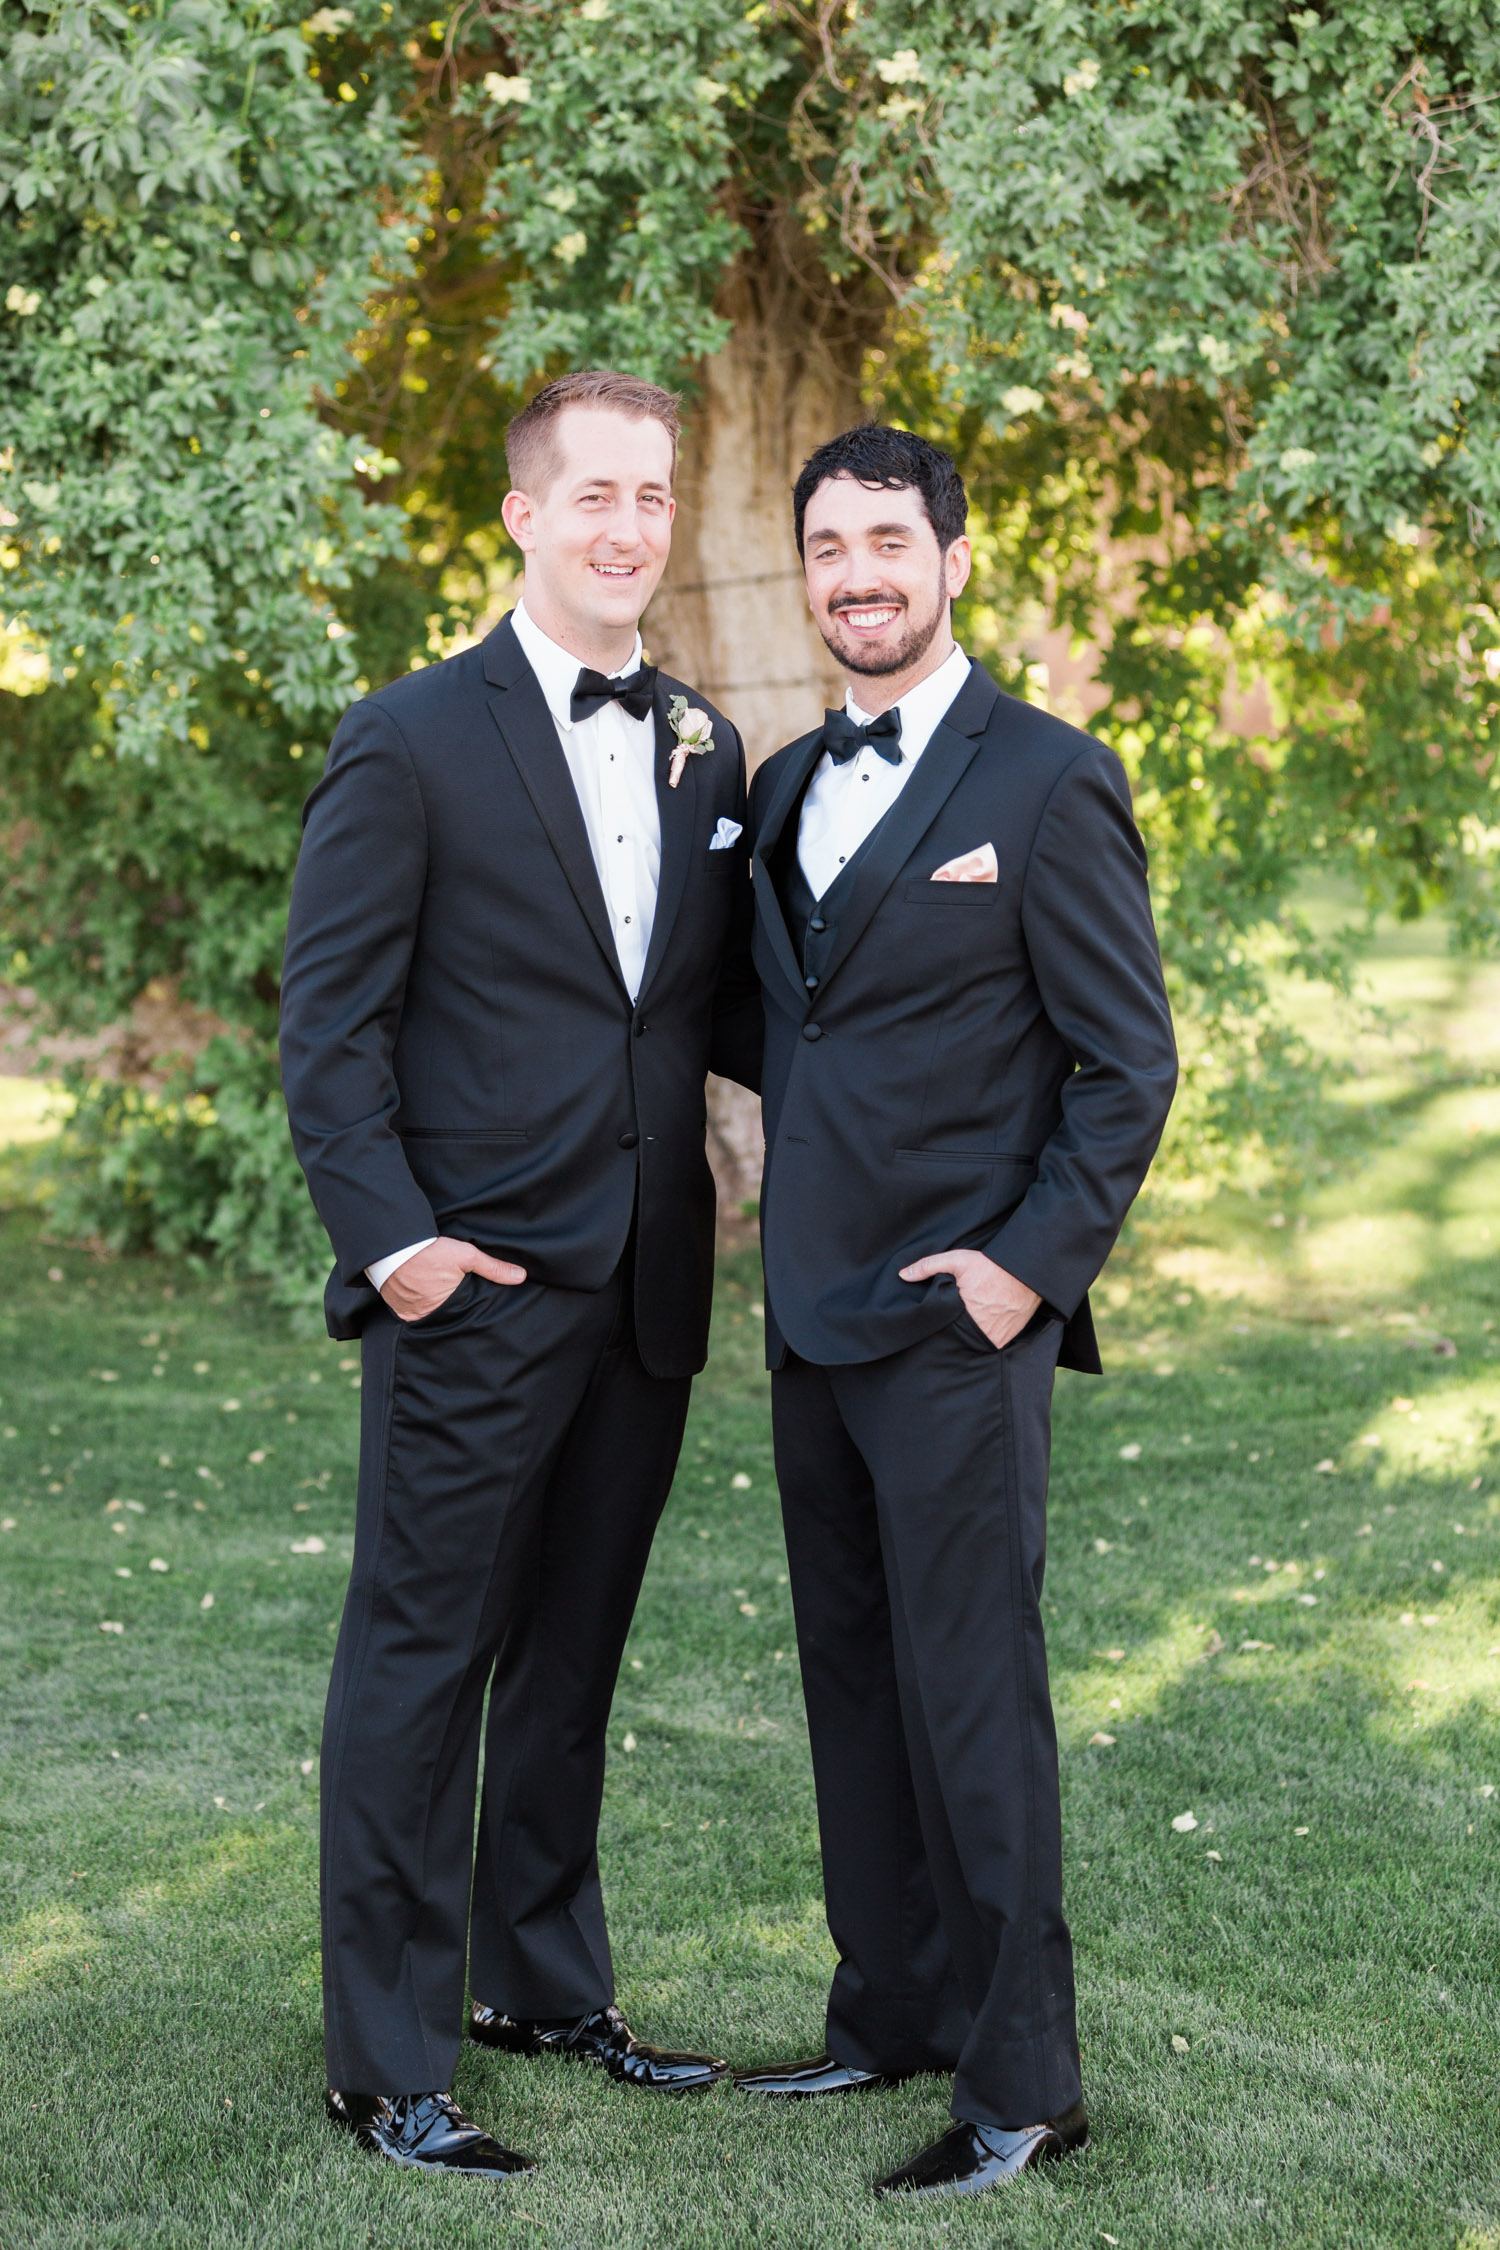 Groom with best man in black tuxedos